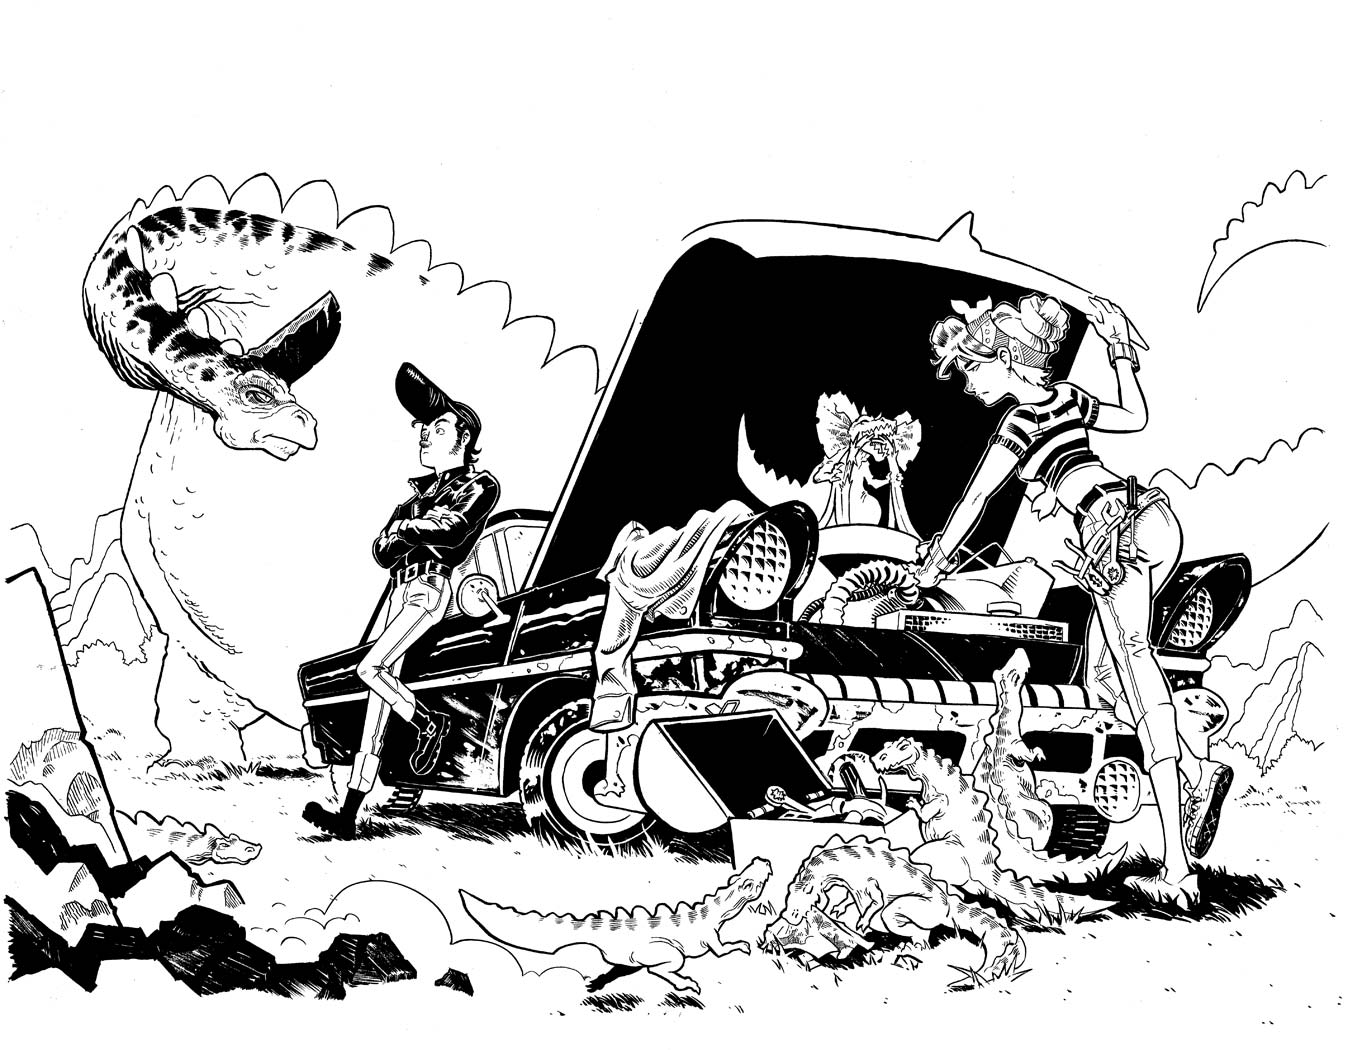 Comic-Book-Art-Inking-1950's-Rockabilley-car-breakdown-dinosaurs-Robin-Holstein.jpg